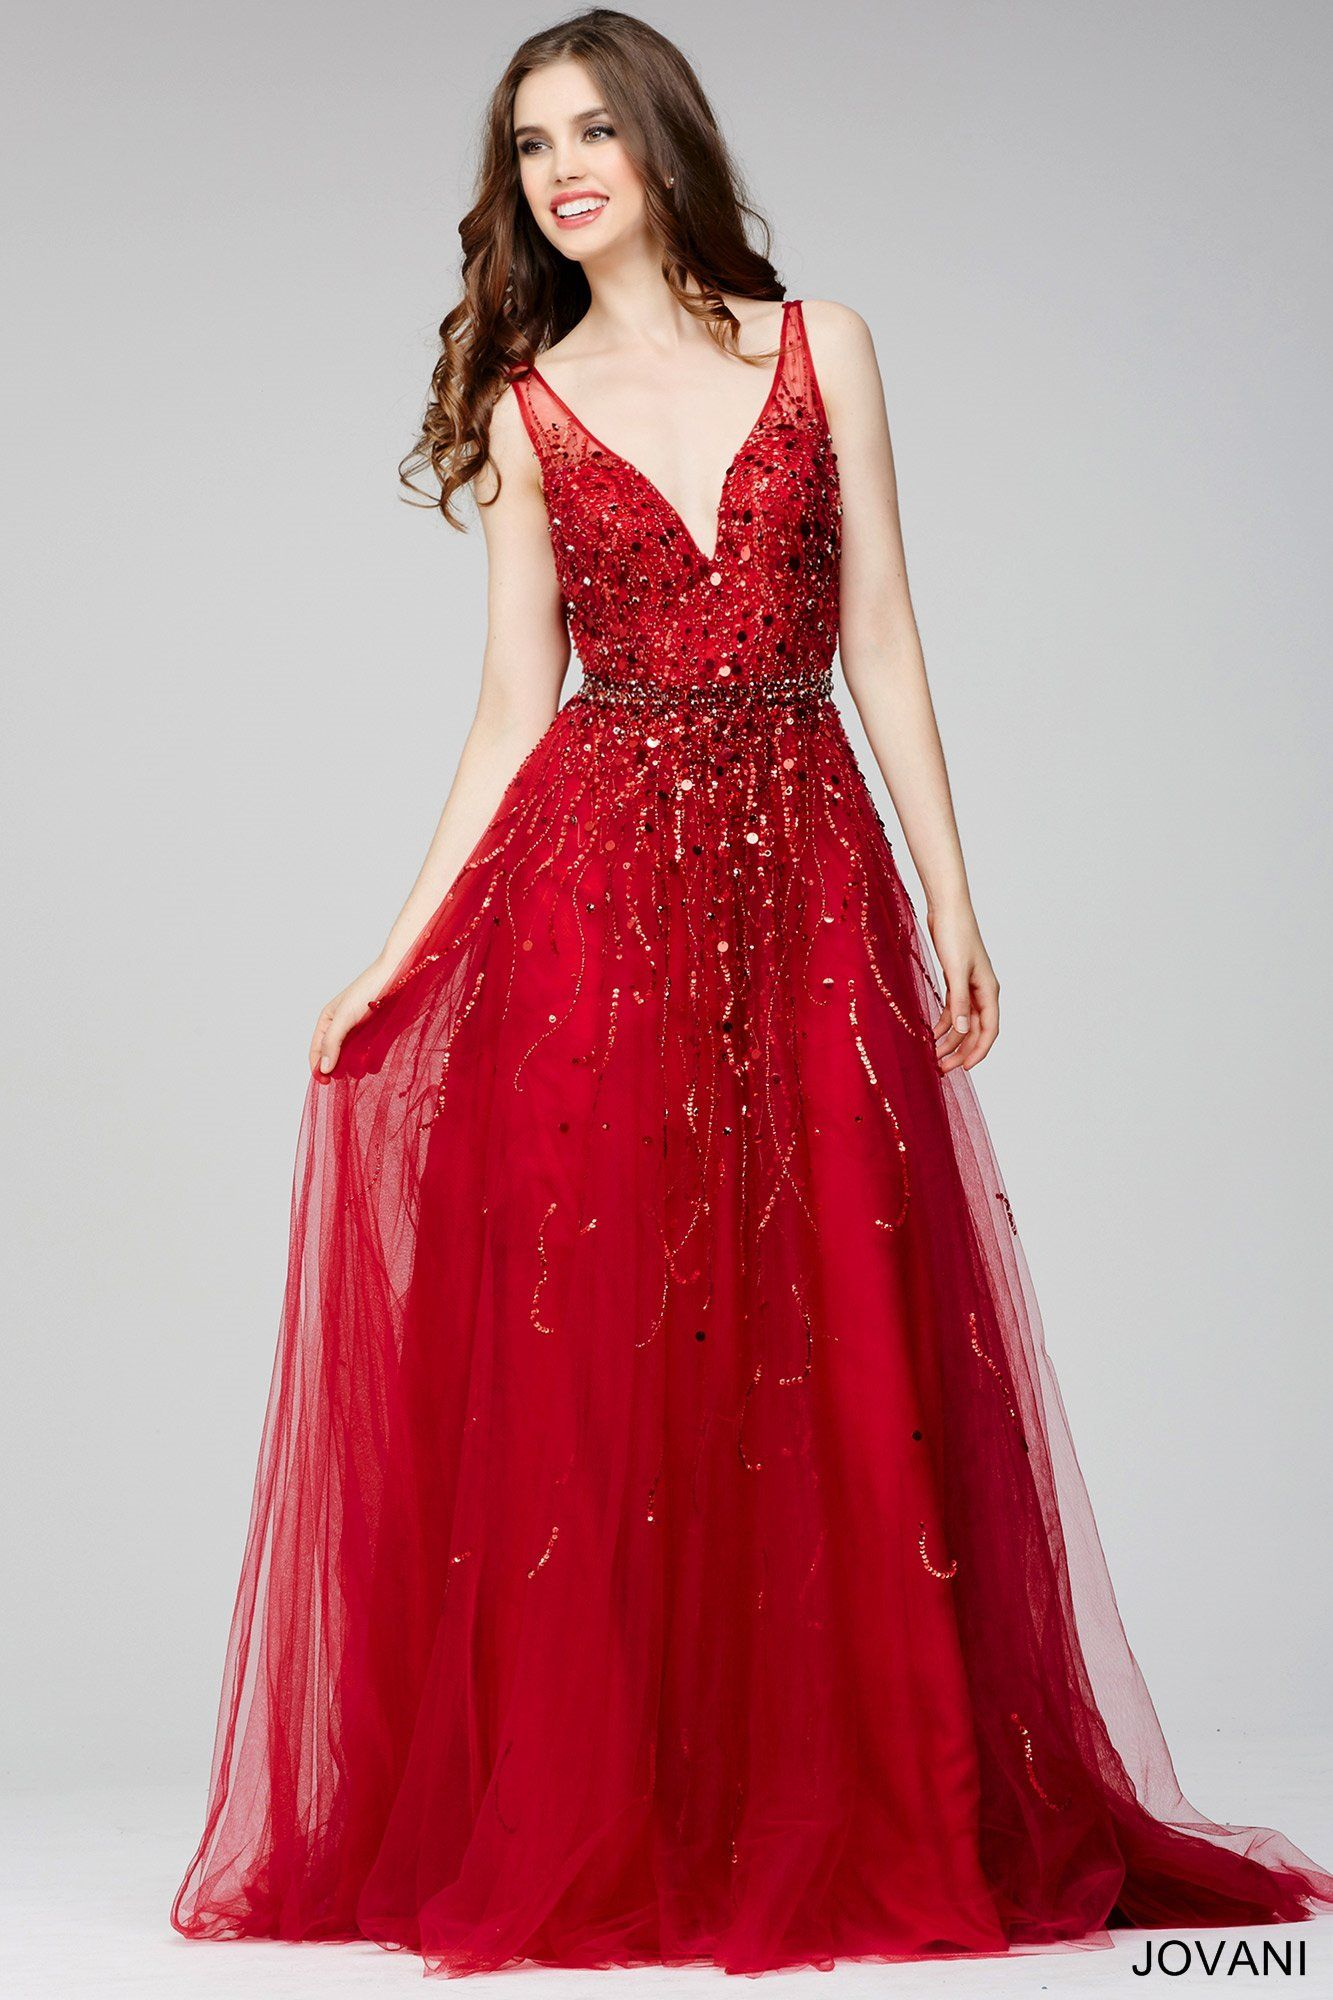 Shine bright like a diamond in jovani dresspiration